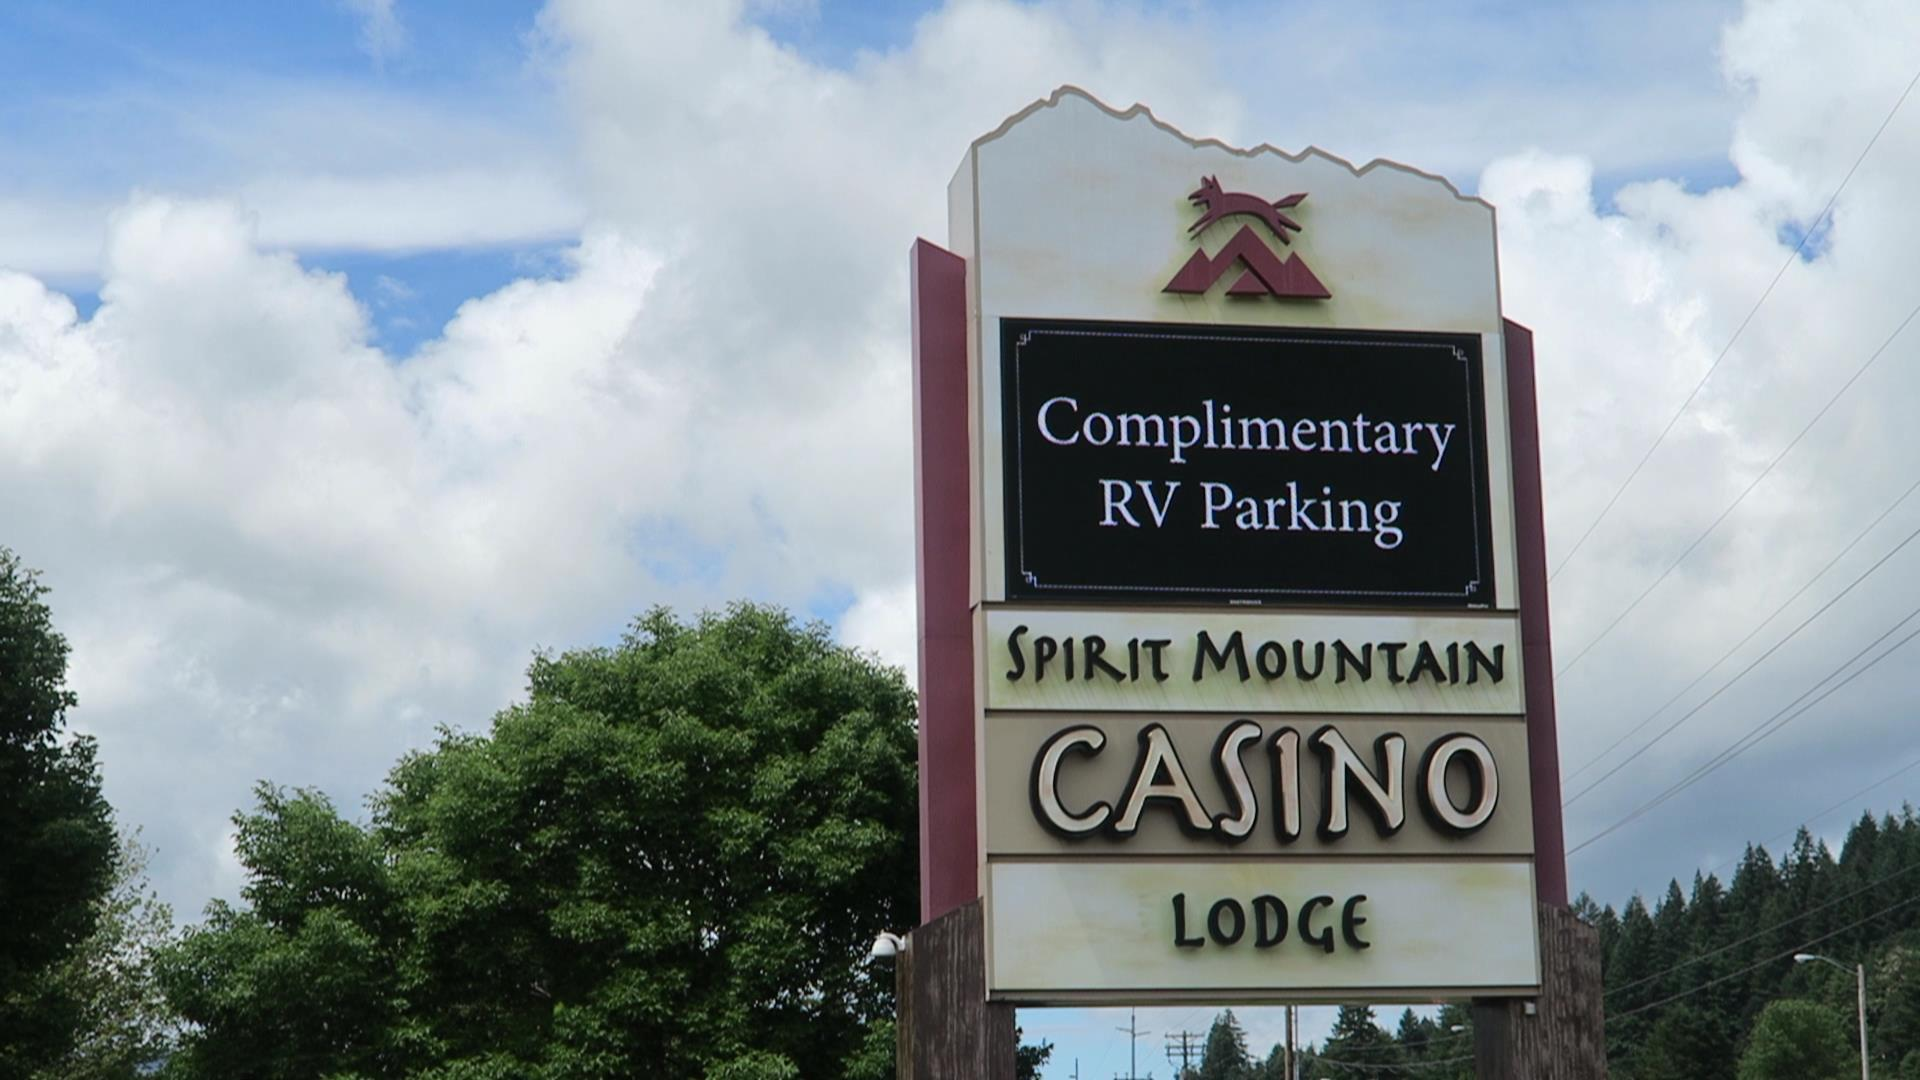 Free RV Camping – Parking at Casinos